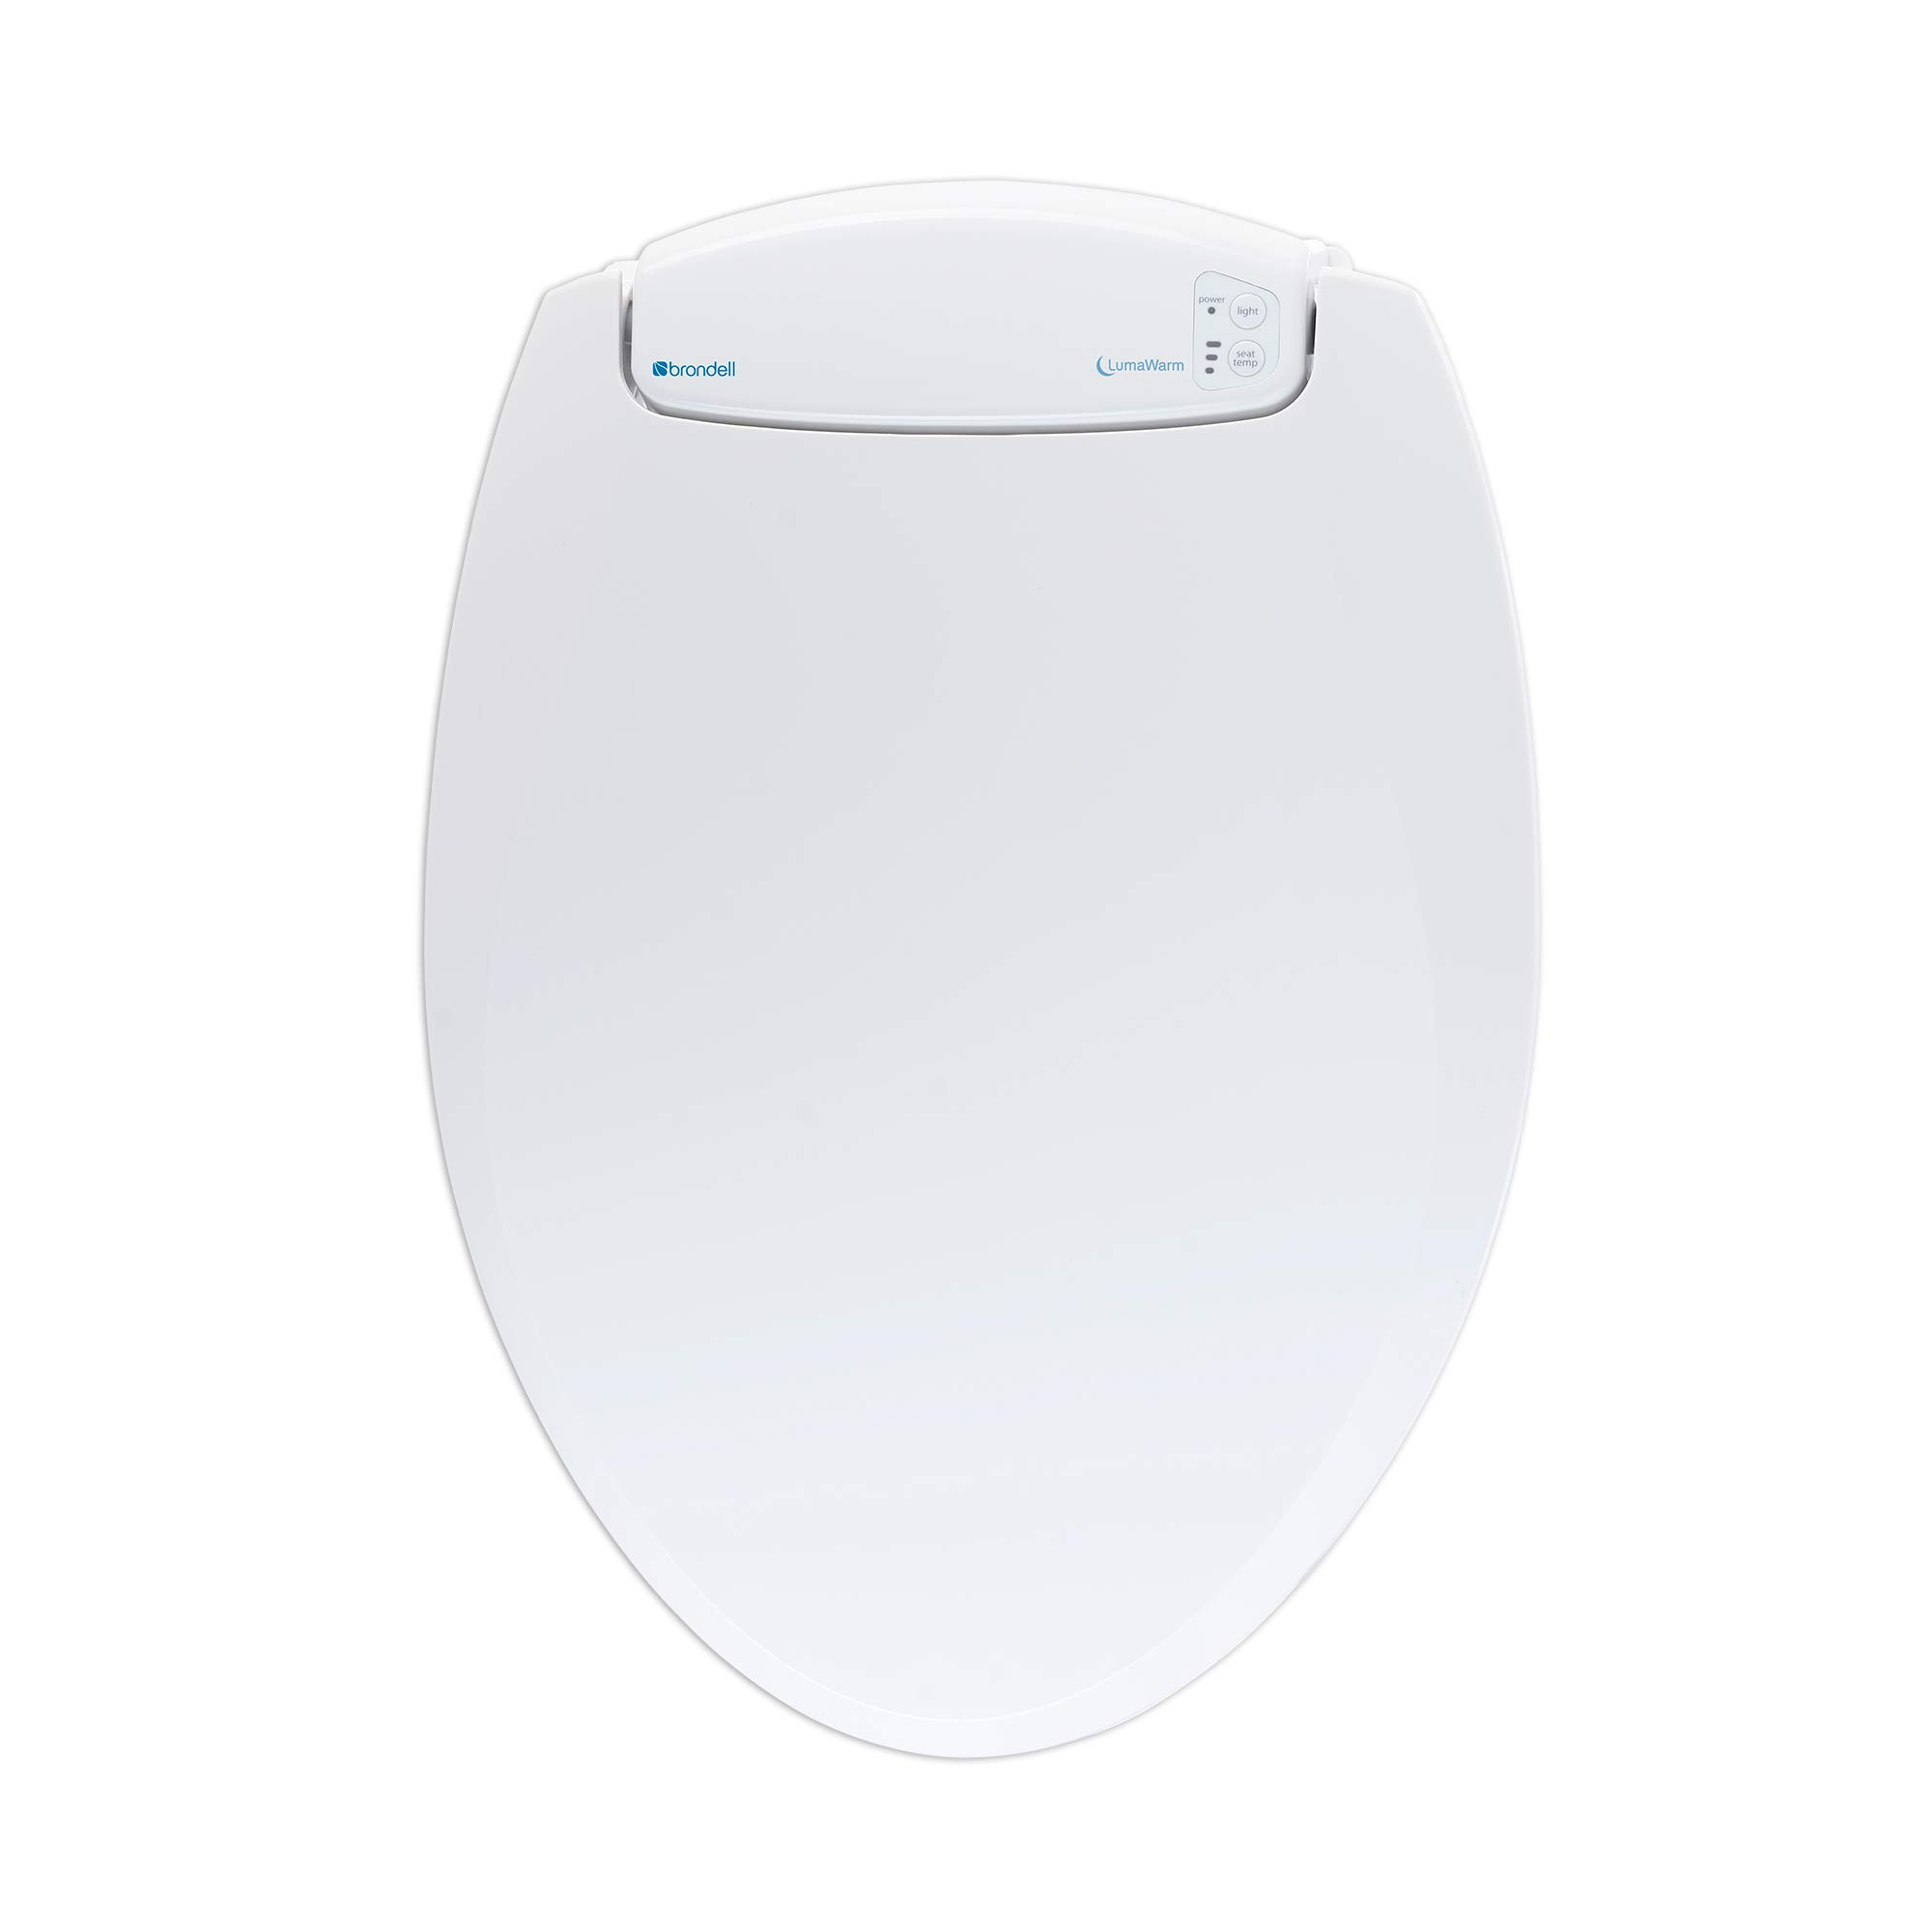 Wondrous Best Rated In Toilets Toilet Parts Helpful Customer Pabps2019 Chair Design Images Pabps2019Com